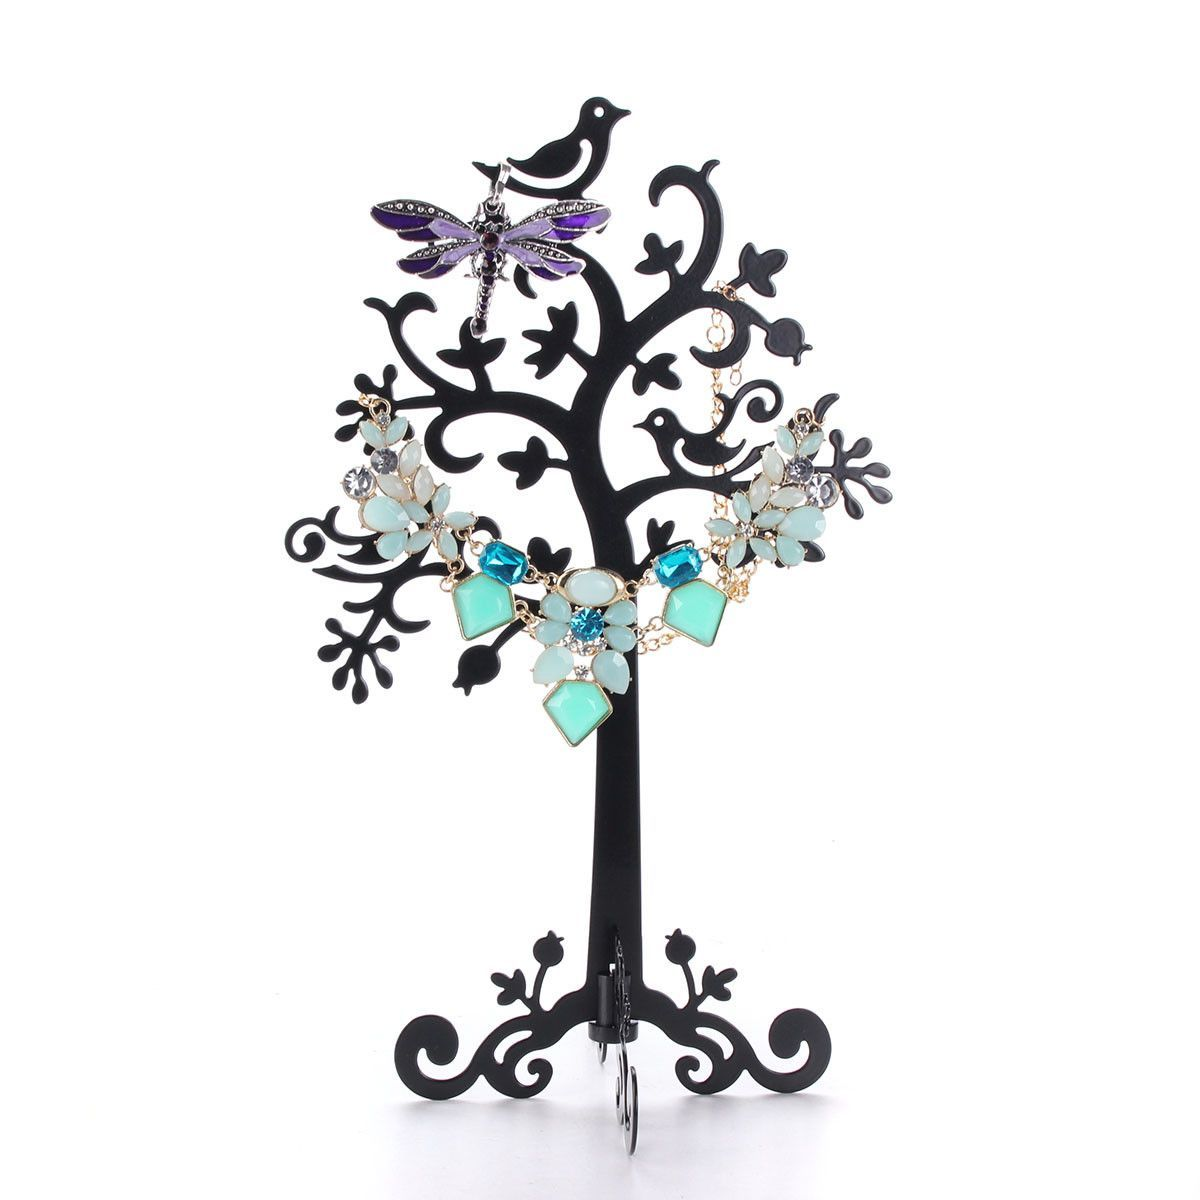 2016-New-Metal-Jewelry-Earring-Ring-Tree-Shaped-Display-Stand-Holder-Decorative-Beautify-Supplies-Black-or_1